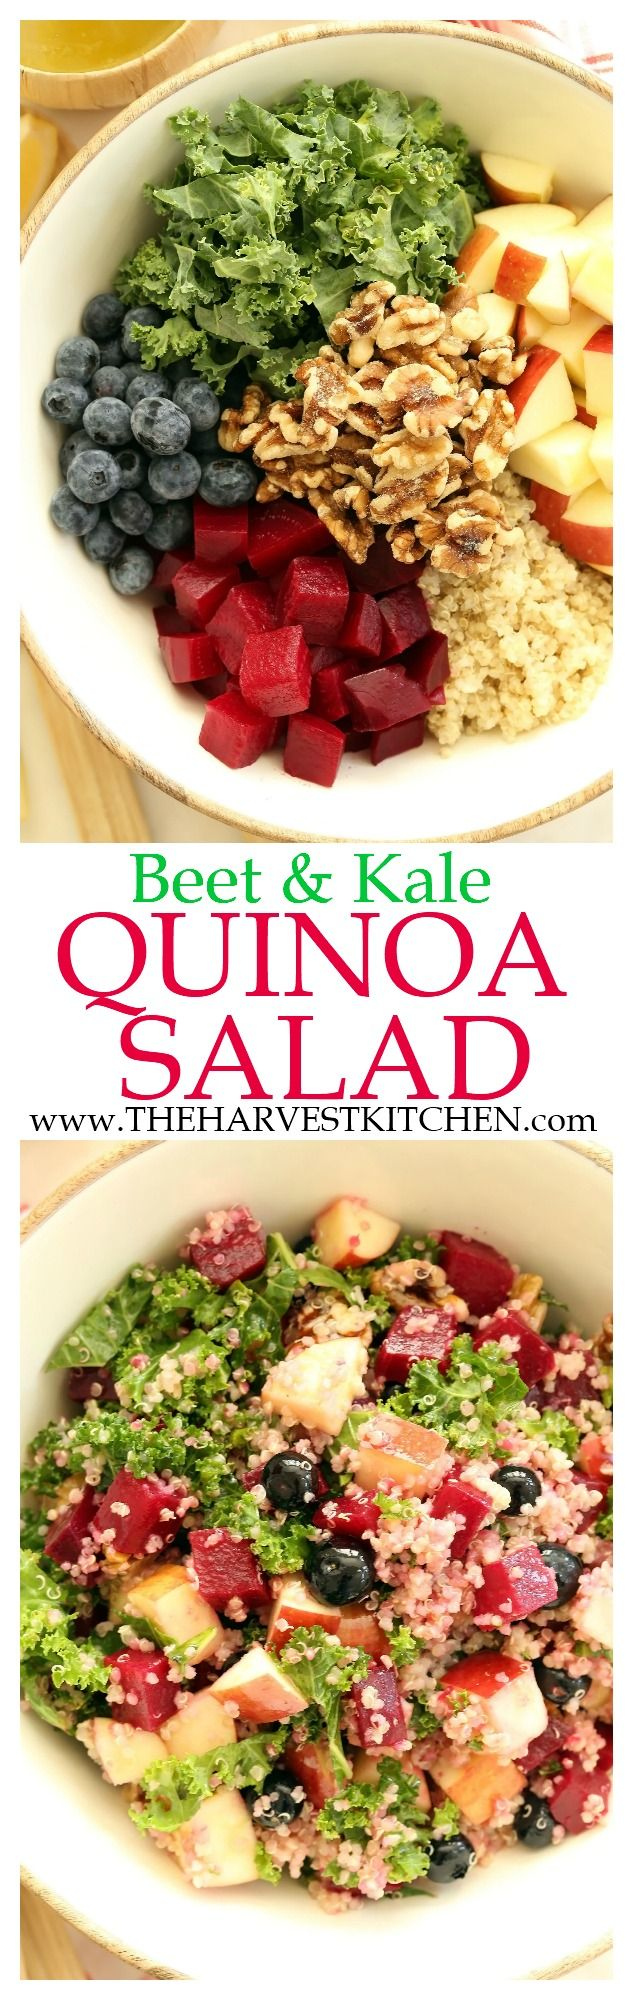 This Beet & Kale Quinoa Salad is a powerhouse salad that's loaded with vitamins, minerals and a combo of sweet and earthy flavors! | vegetarian recipes | | quinoa salad recipes | | detox recipes | | detox salad | | clean eating | | healthy recipes |